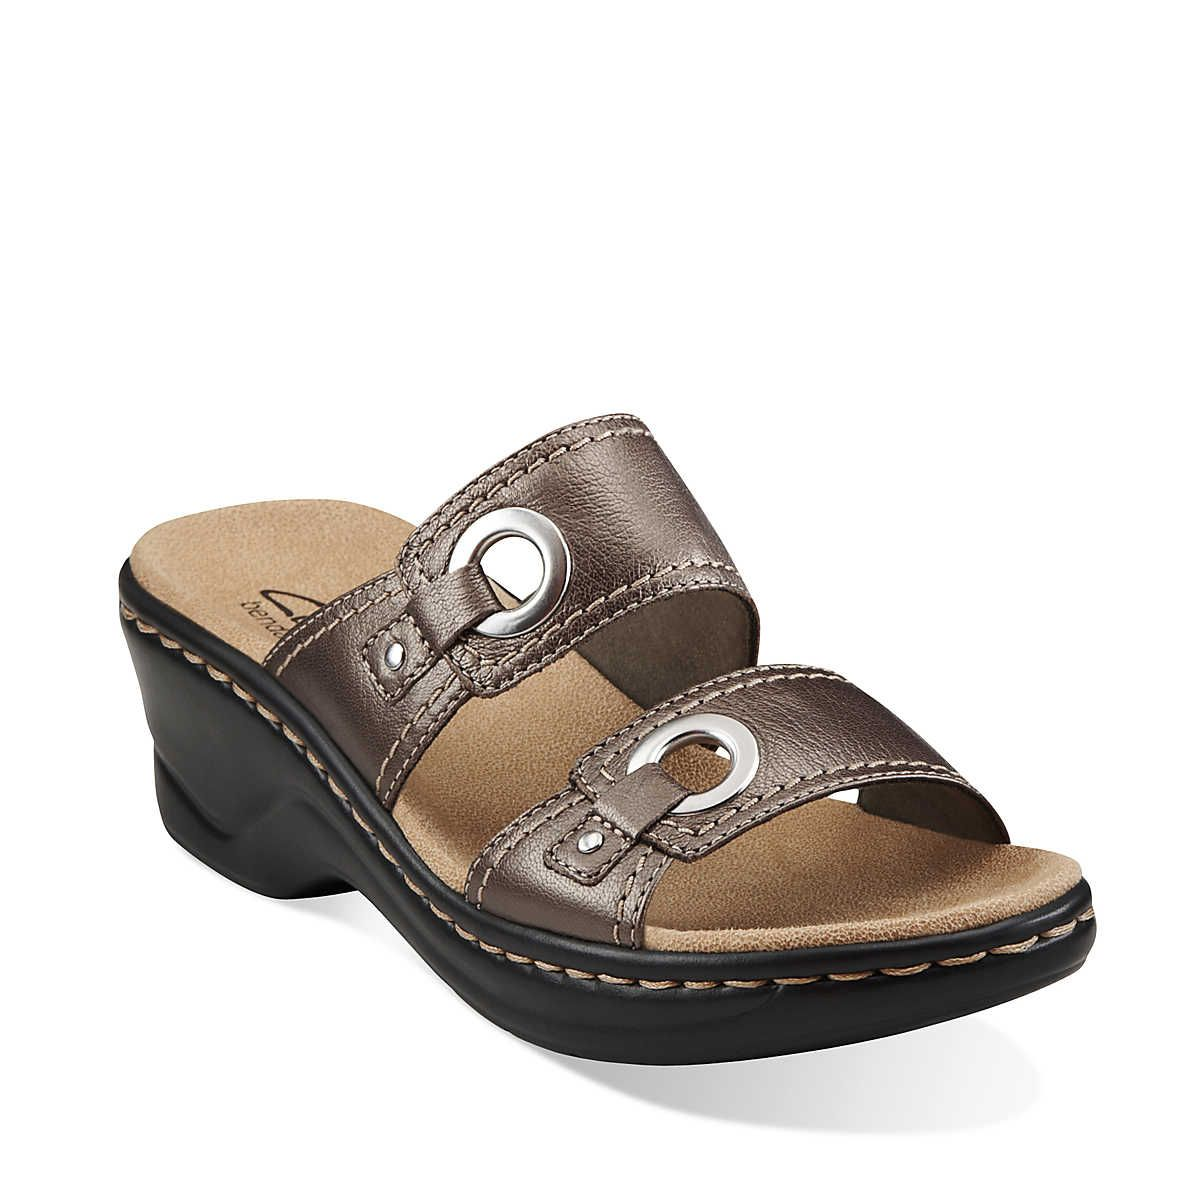 Lexi Willow in Pewter Leather - Womens Sandals from Clarks